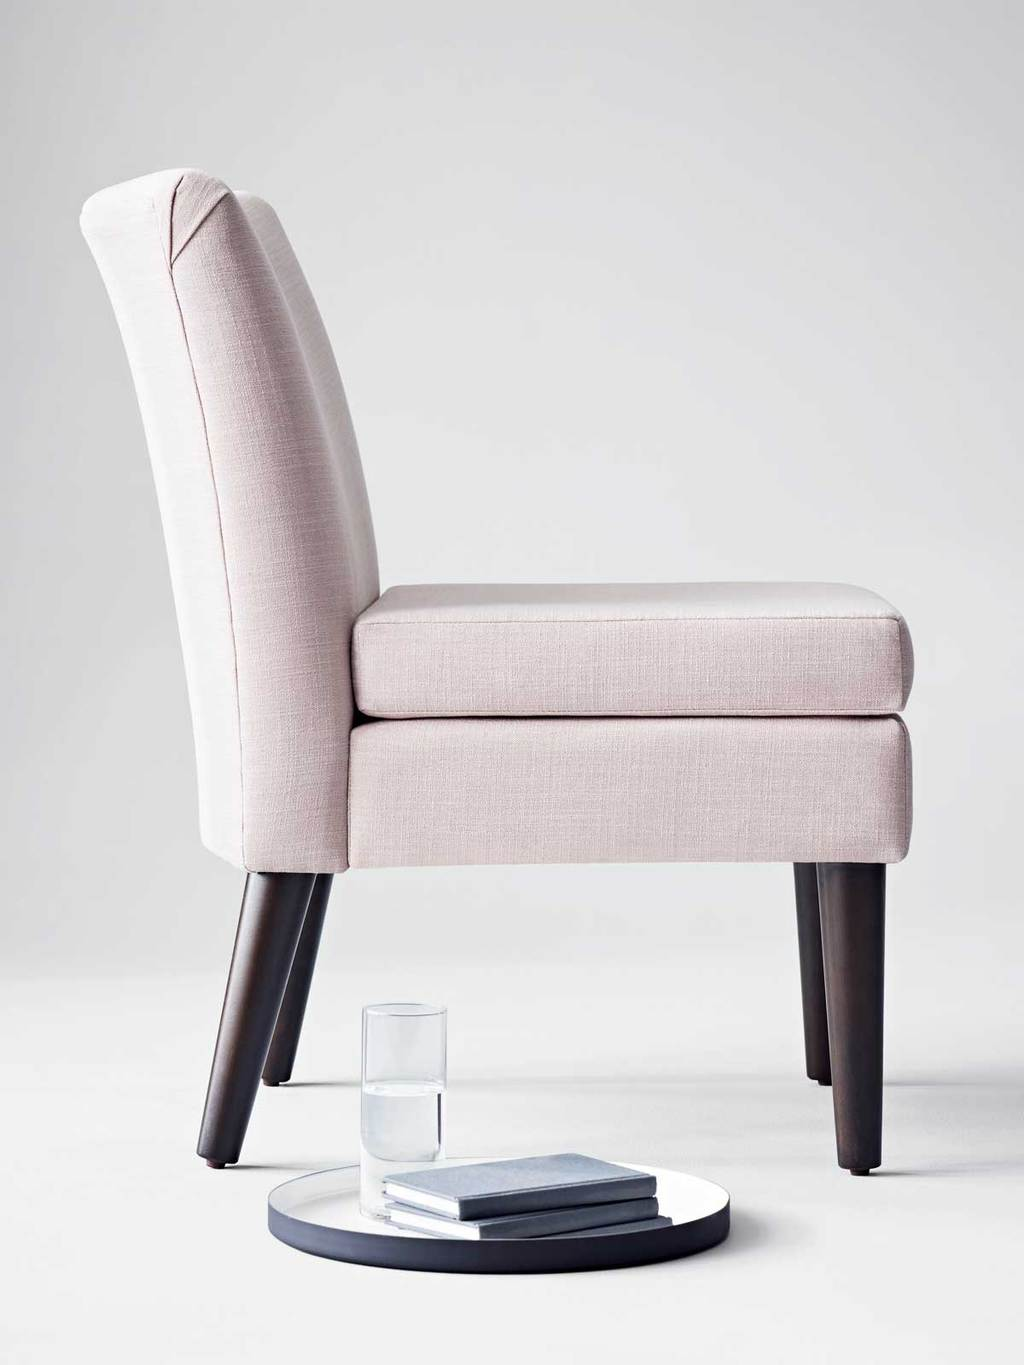 Blush slipper chair from Project 62 on Thou Swell @thouswellblog